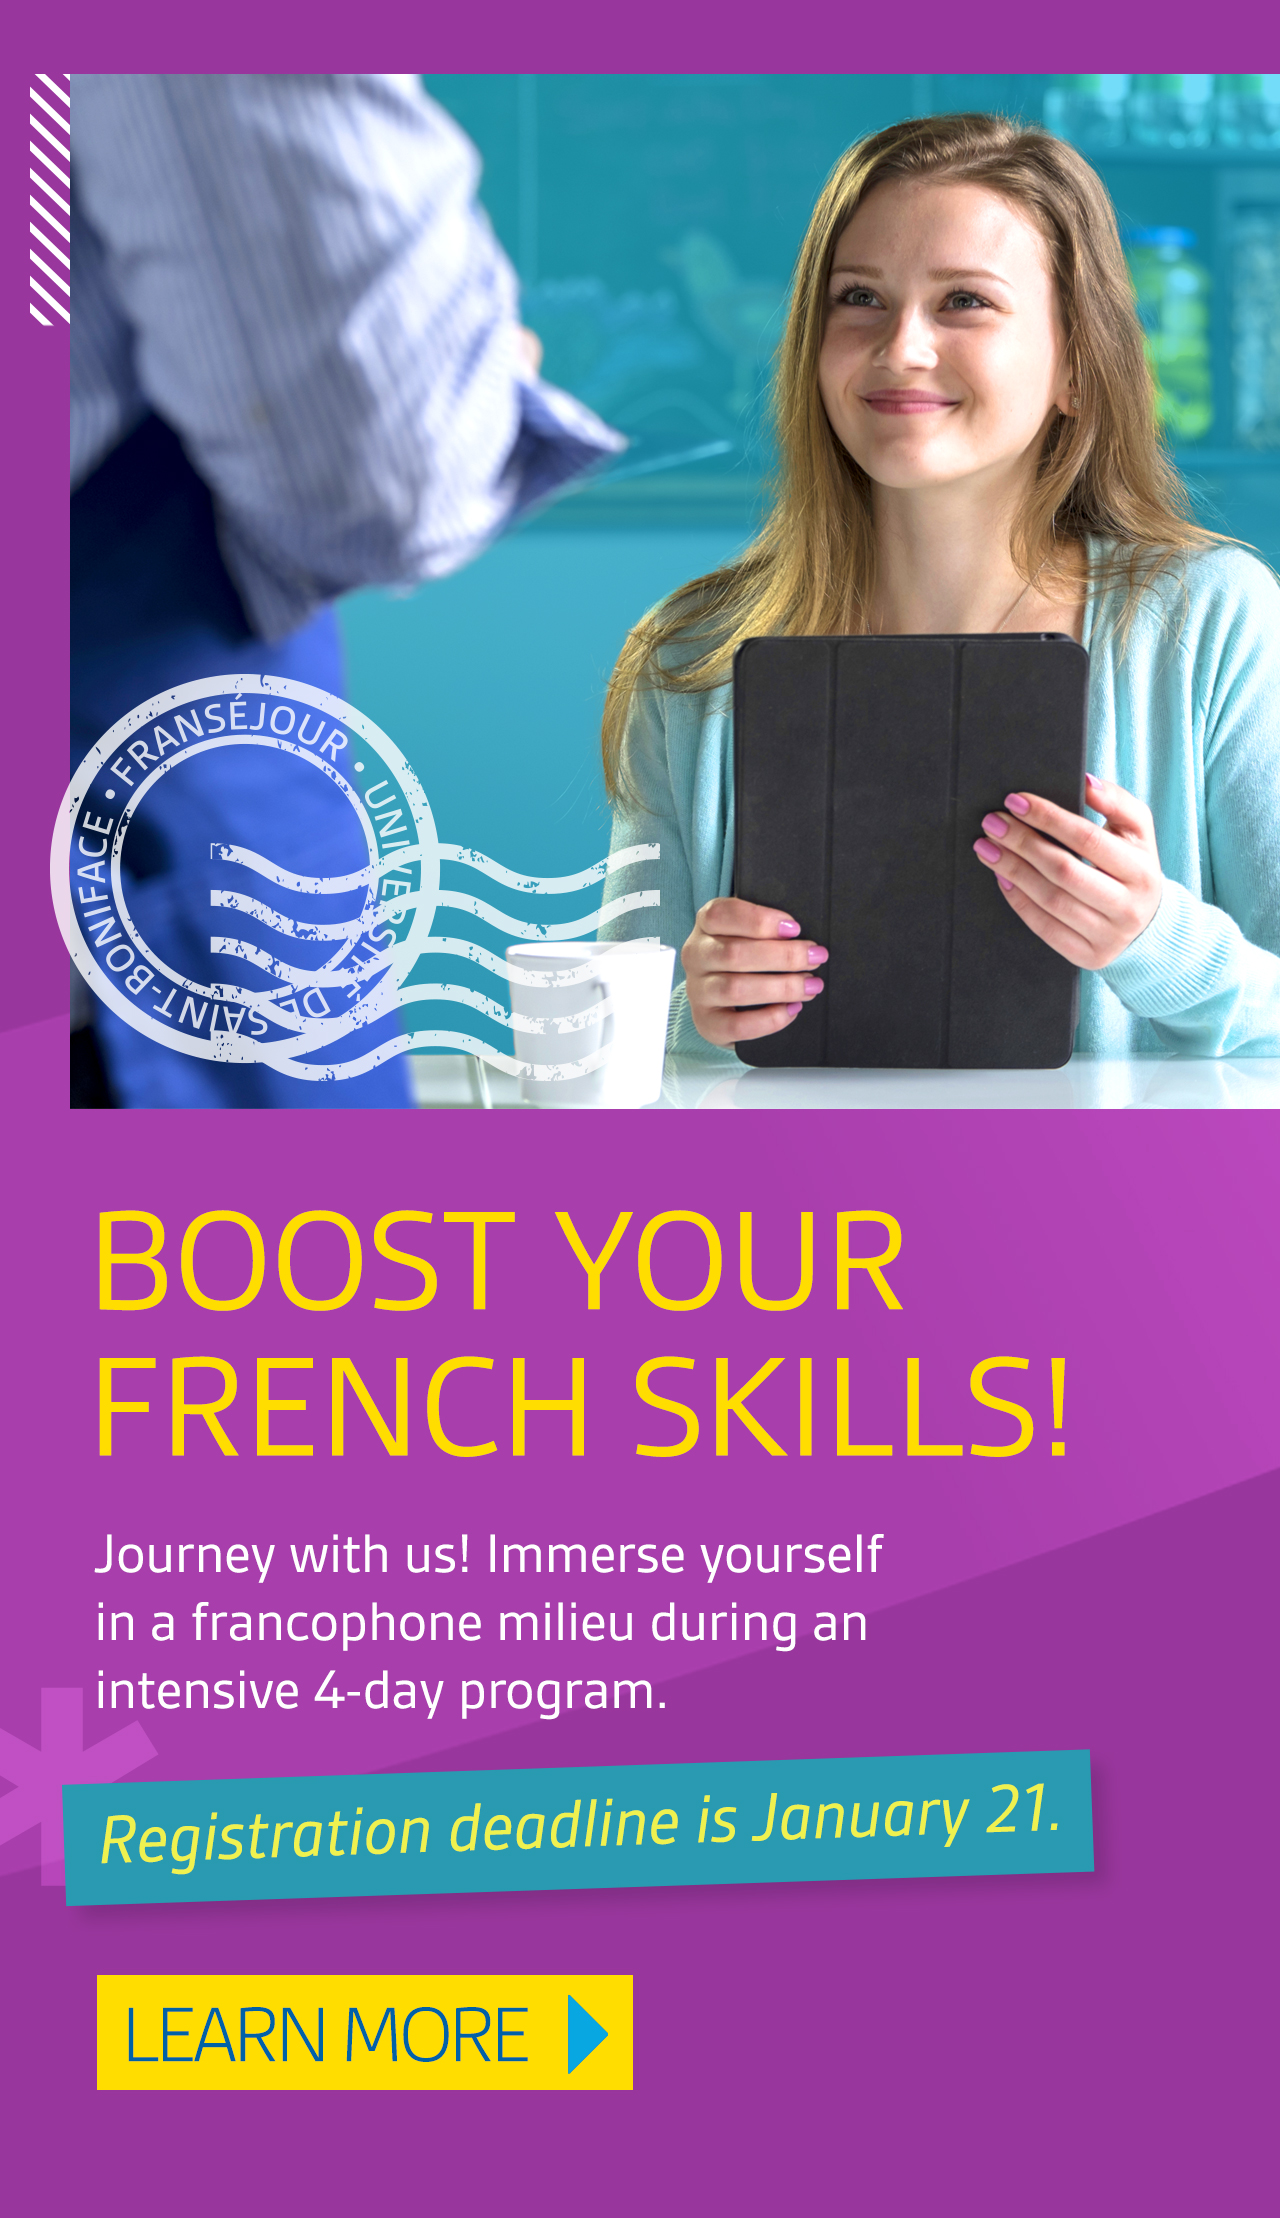 Boost Your French Skills! Journey with us! Immerse yourself in a francophone milieu during an intensive 4-day program. Registration deadline is January 21. Learn more.